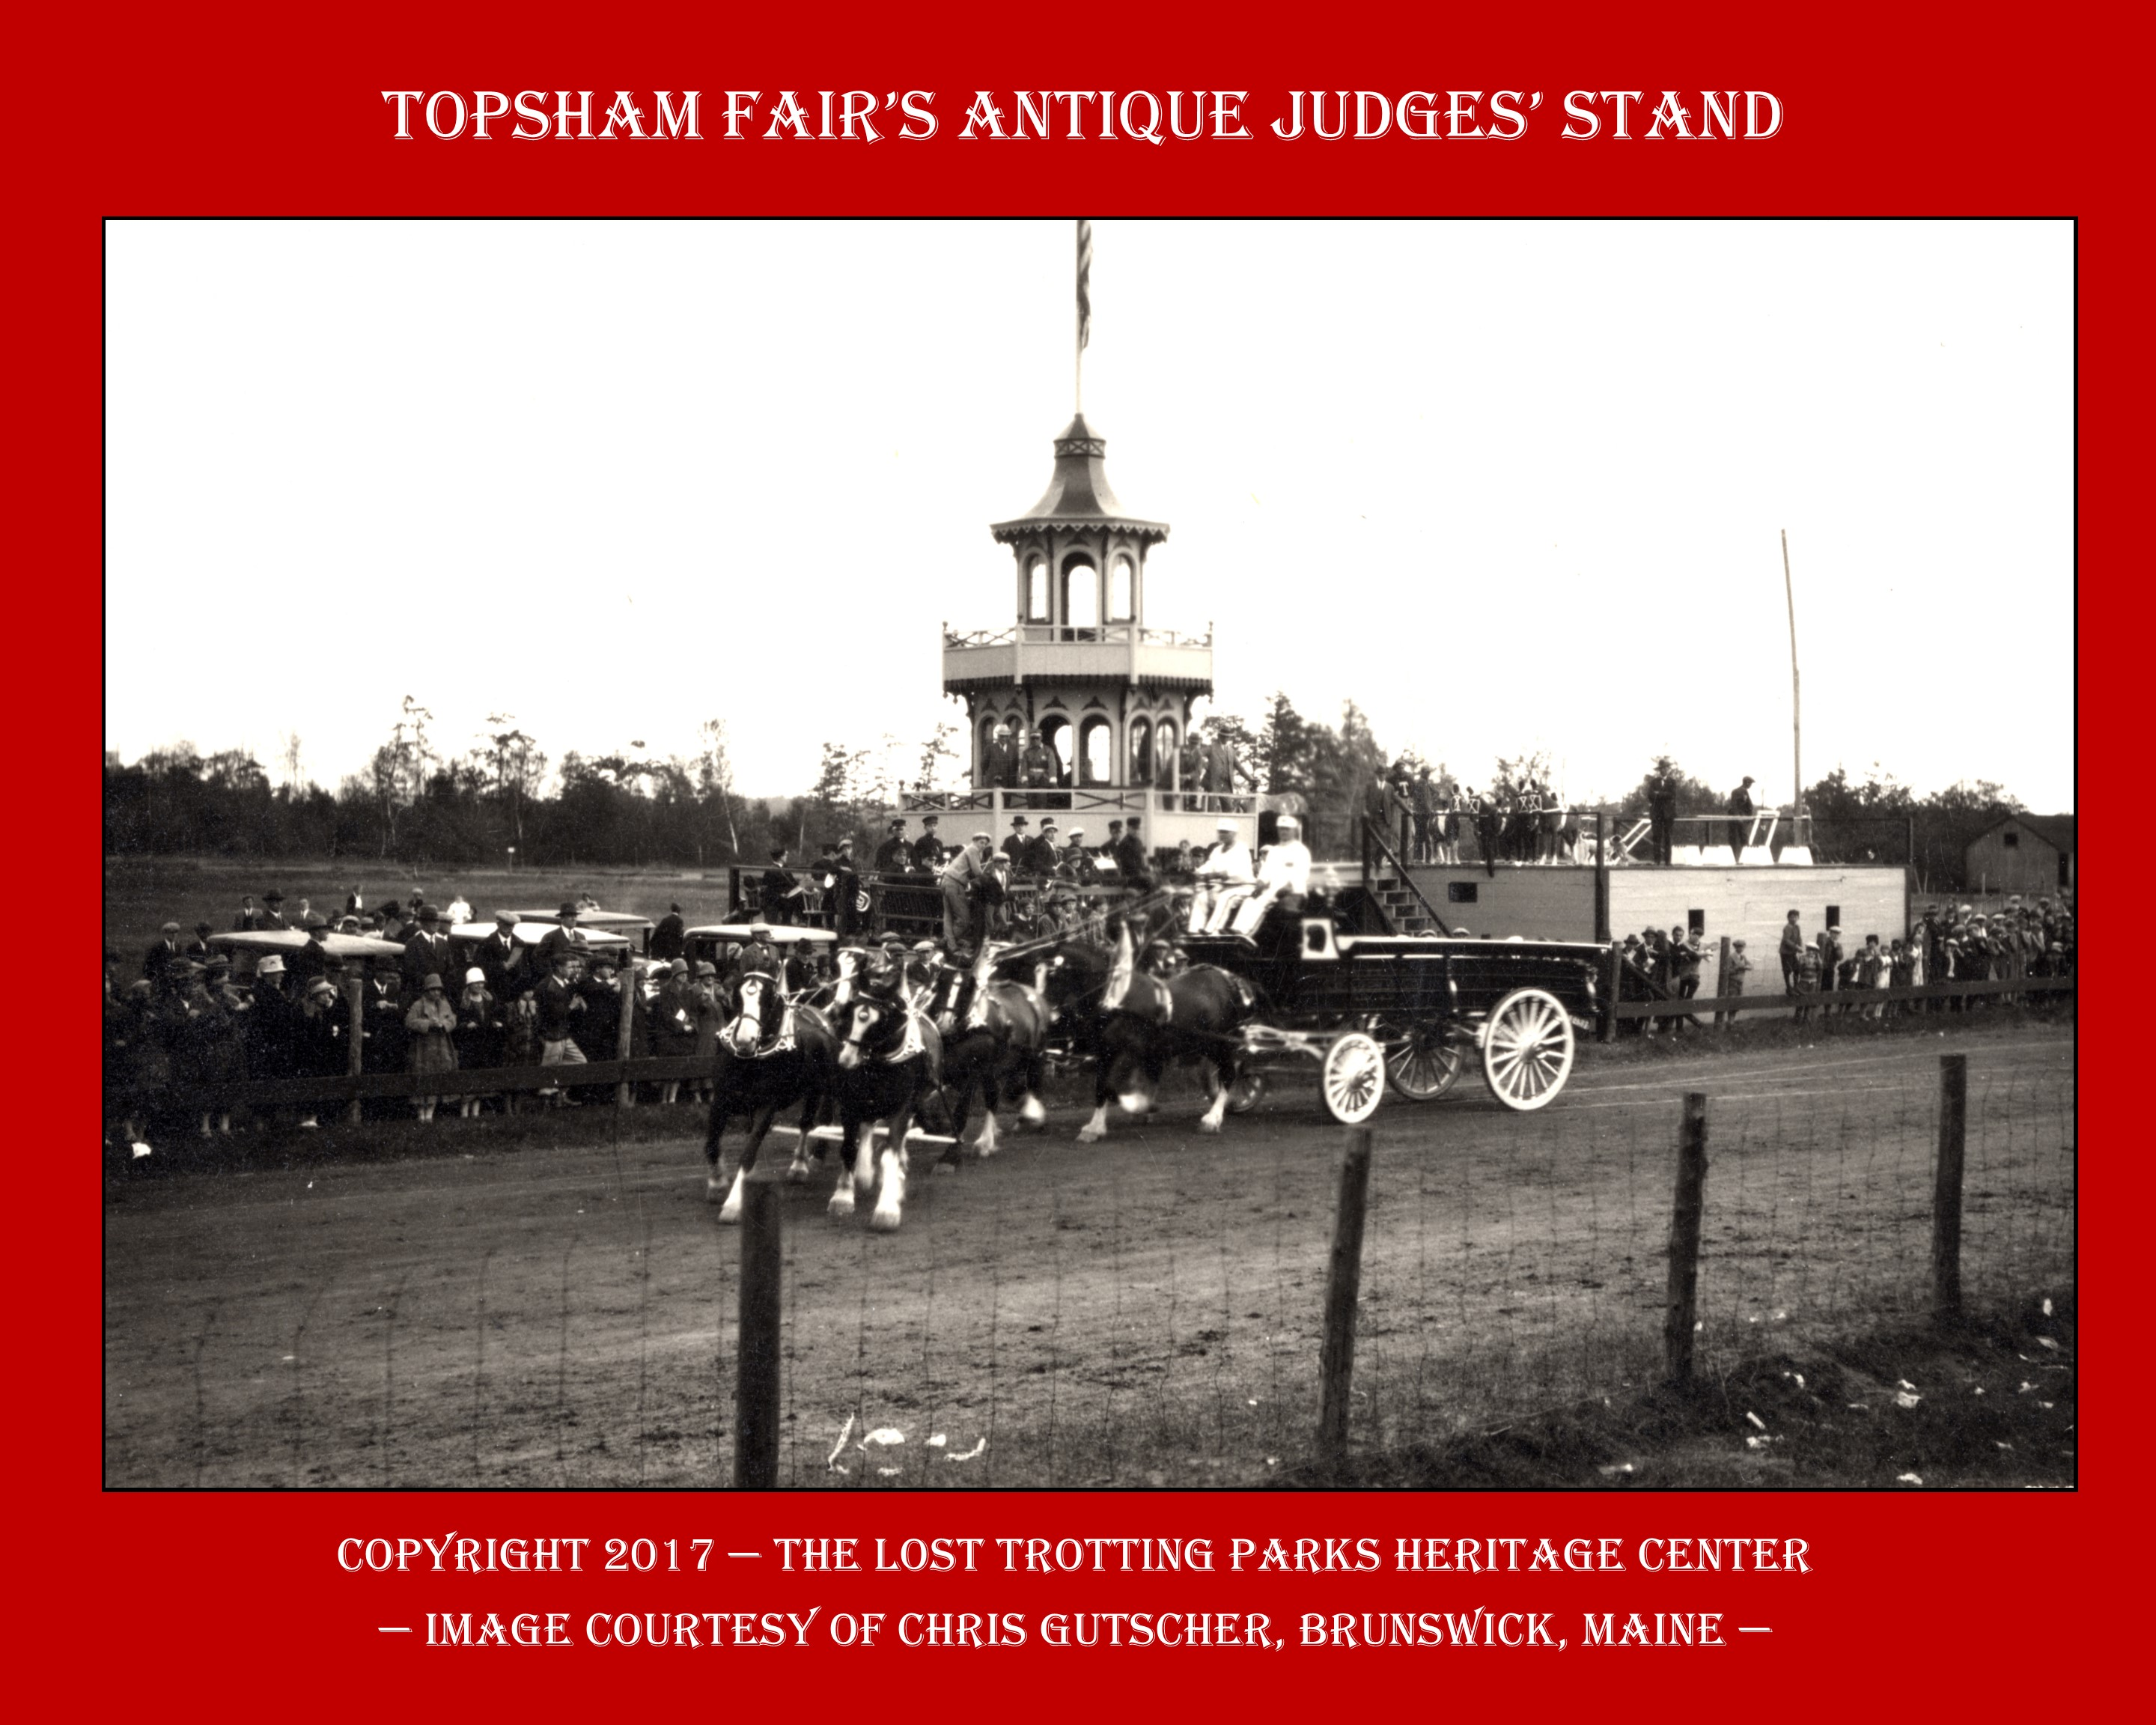 Topsham Fair's 19th Century Judges' Stand — Yesterday and Today!